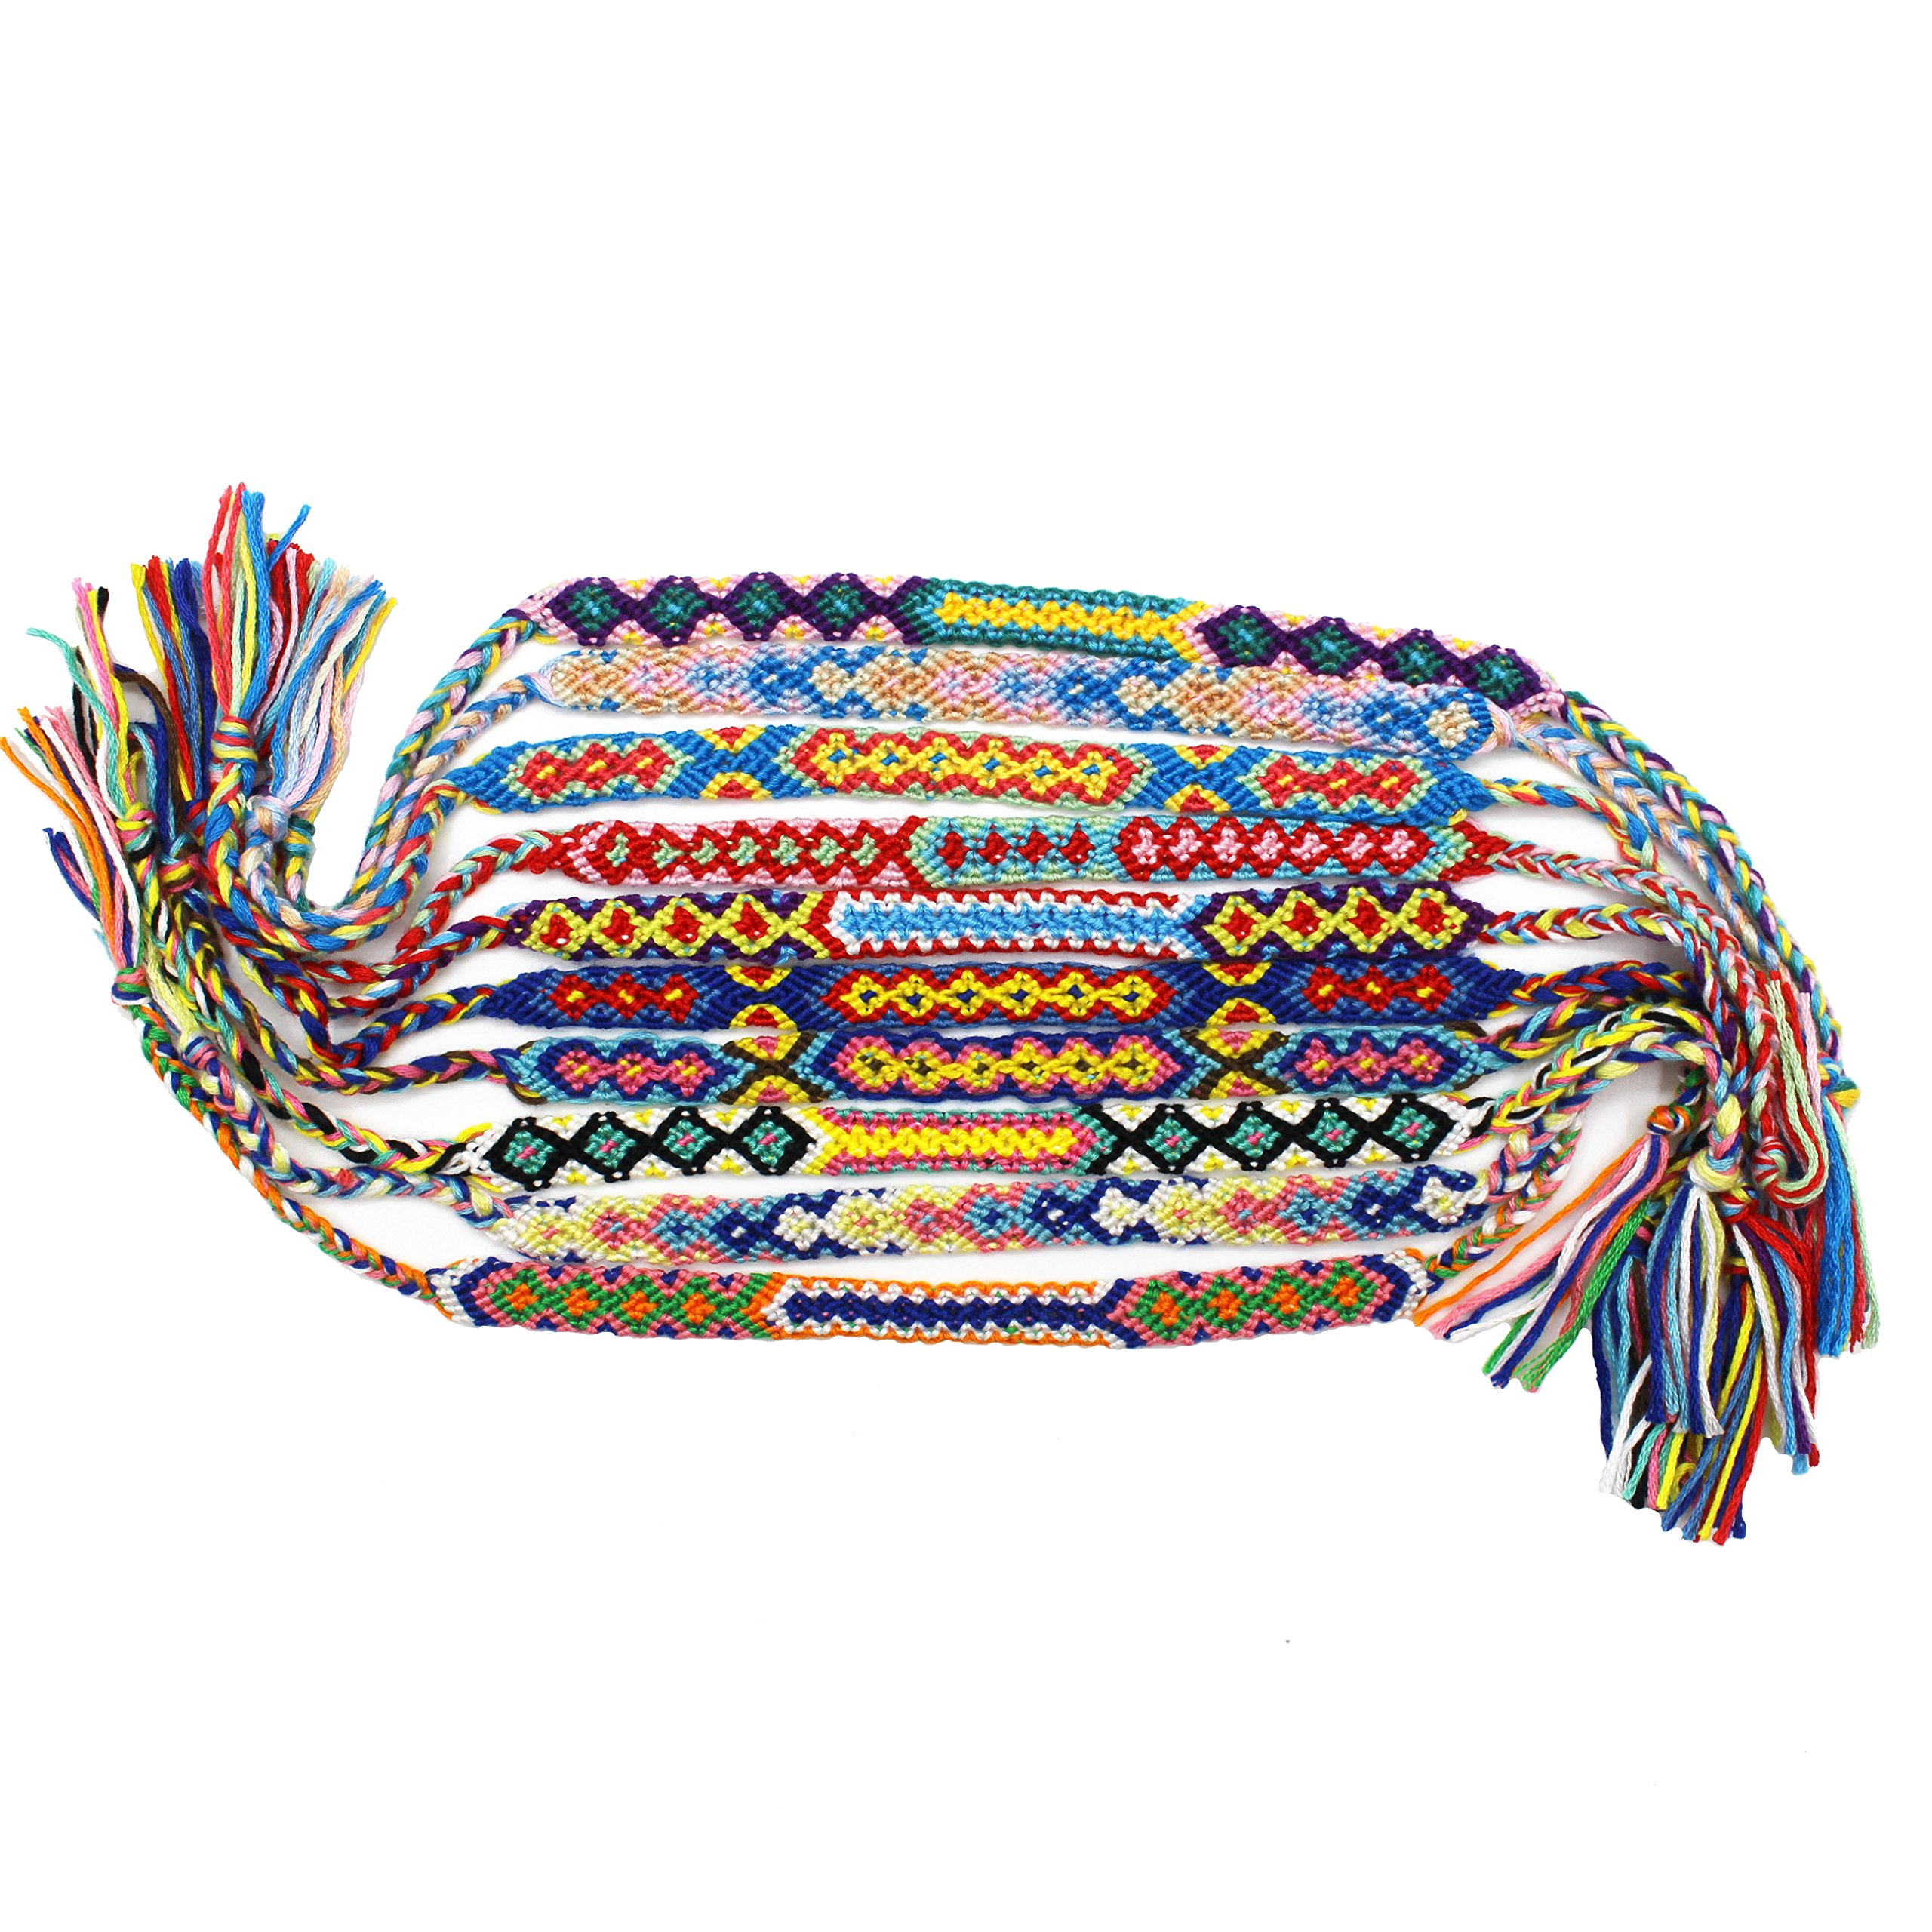 SYGZQ Woven Friendship Bracelet Gifts Thread for Hair Ponytail-10 pack